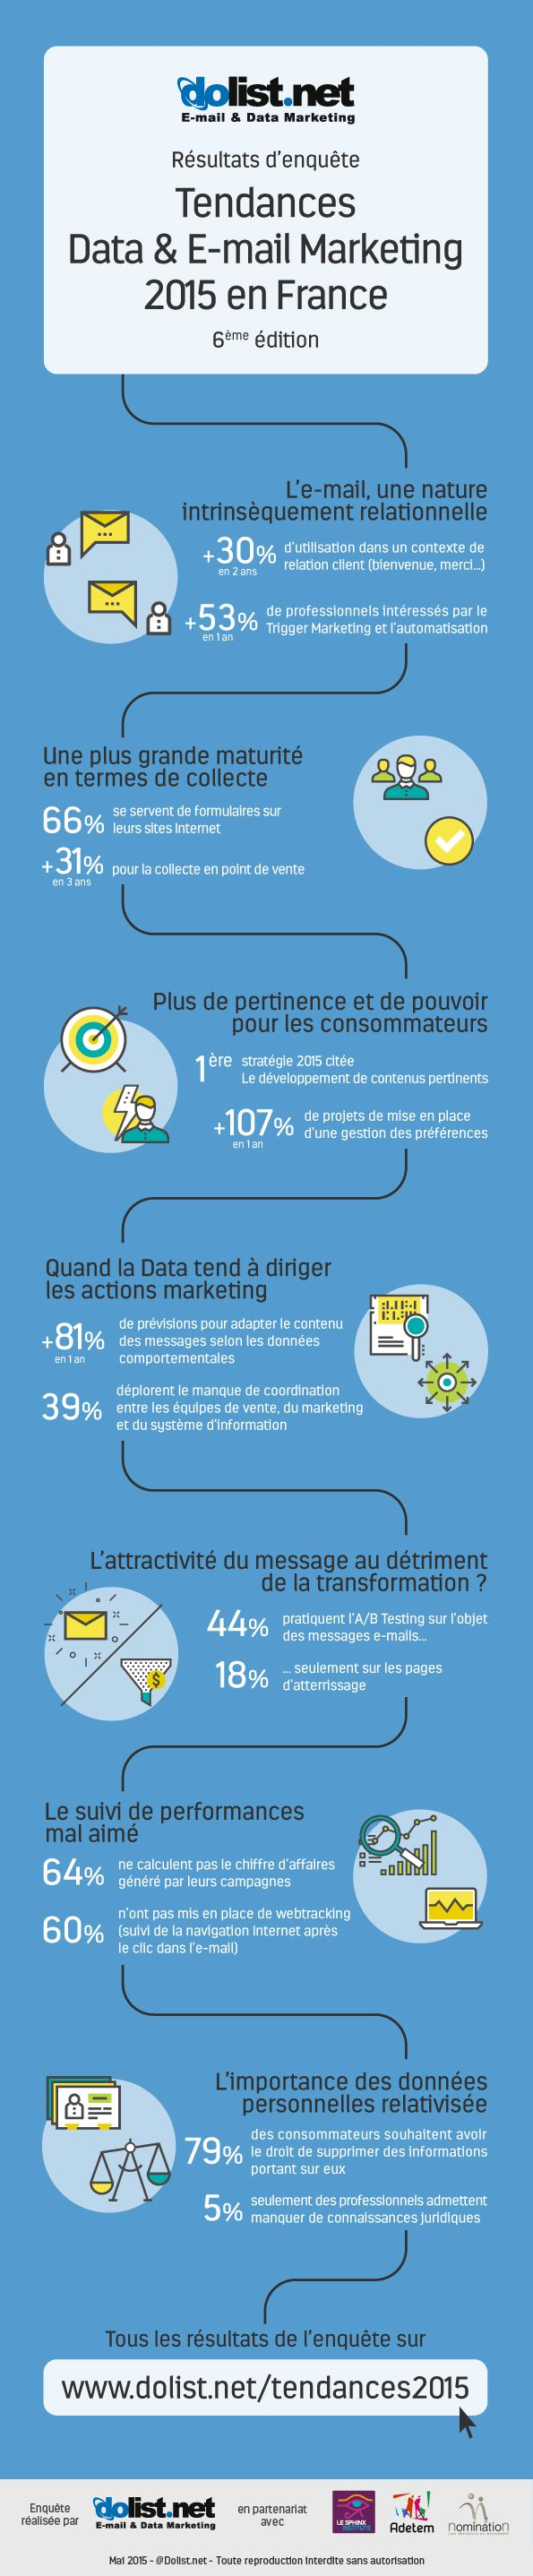 Tendance data et emailing en France #emailing